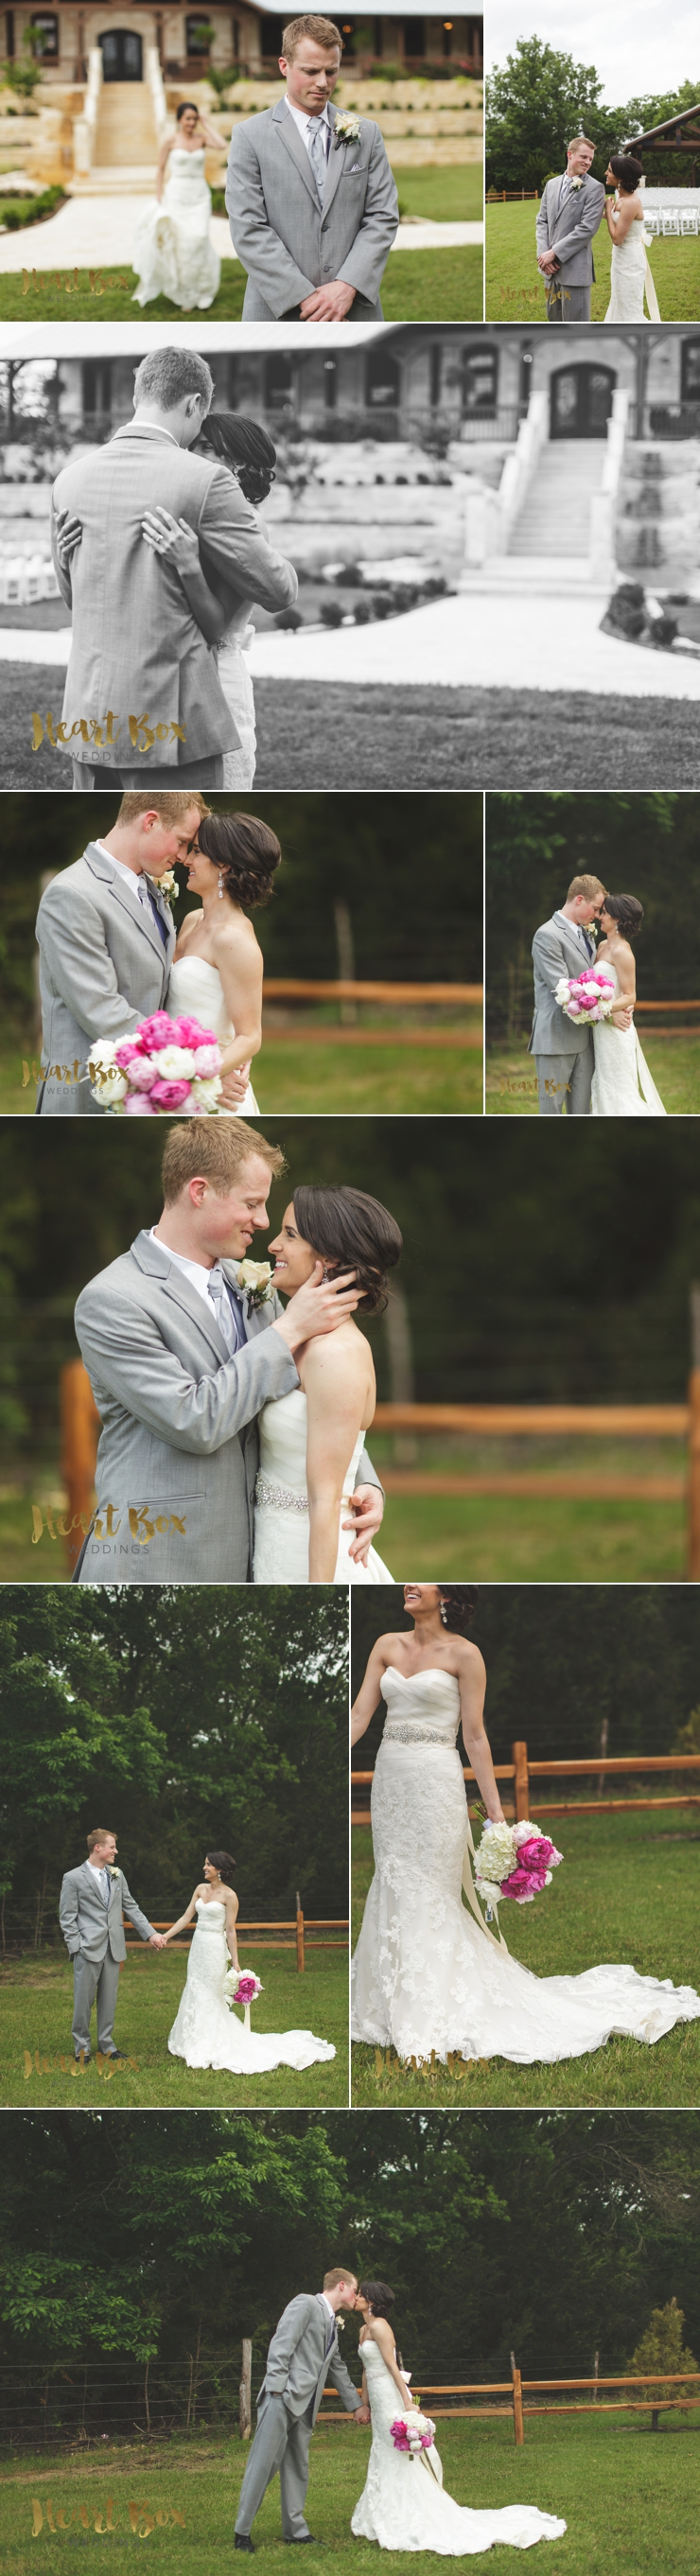 Slack Wedding Blog Collages 5.jpg